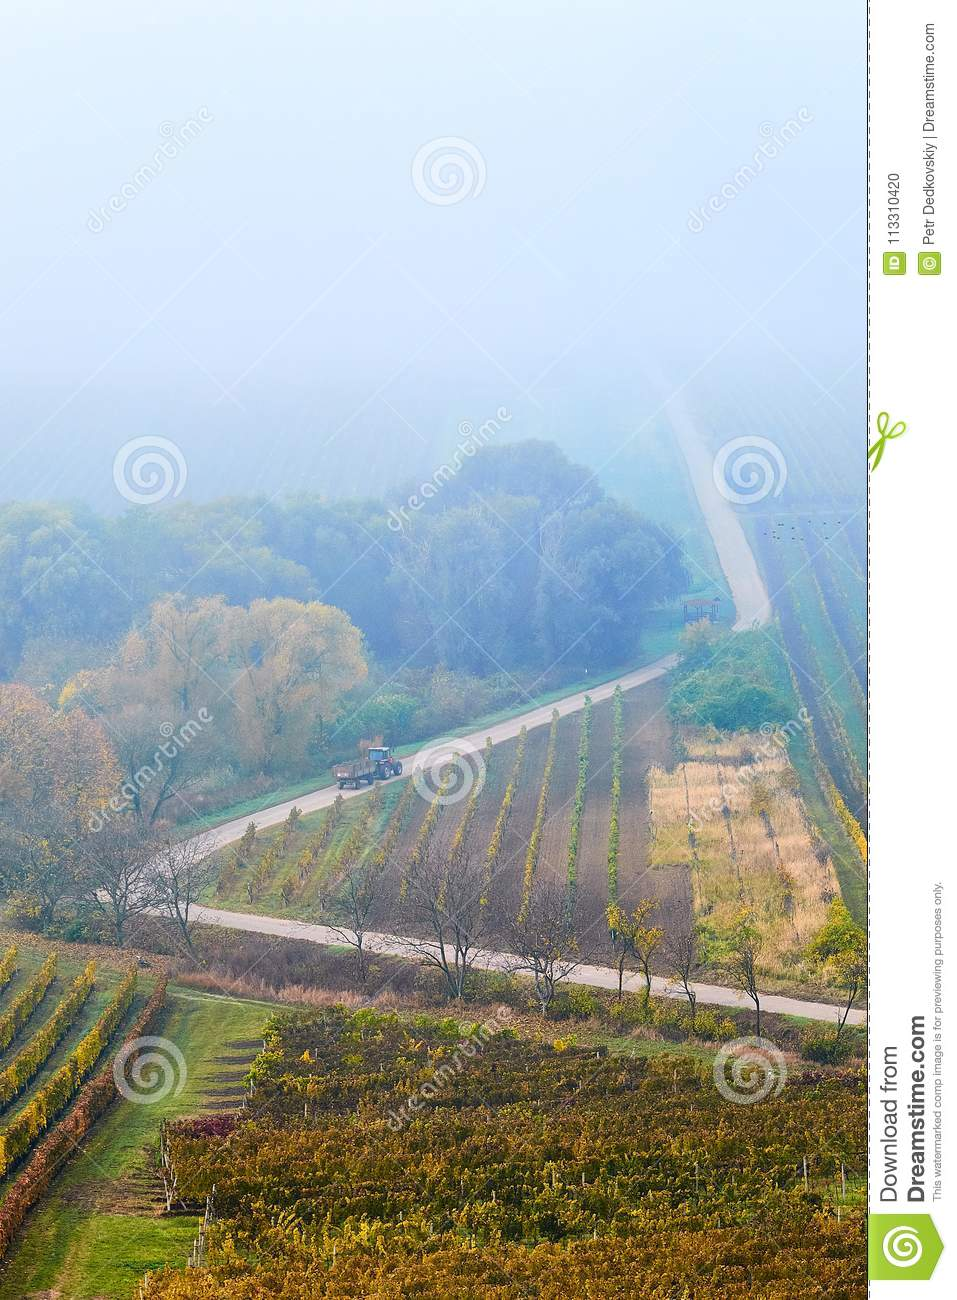 Hills with vineyards and the road disappearing into the fog . Countryside with vineyard and fields with patterns on hills. South